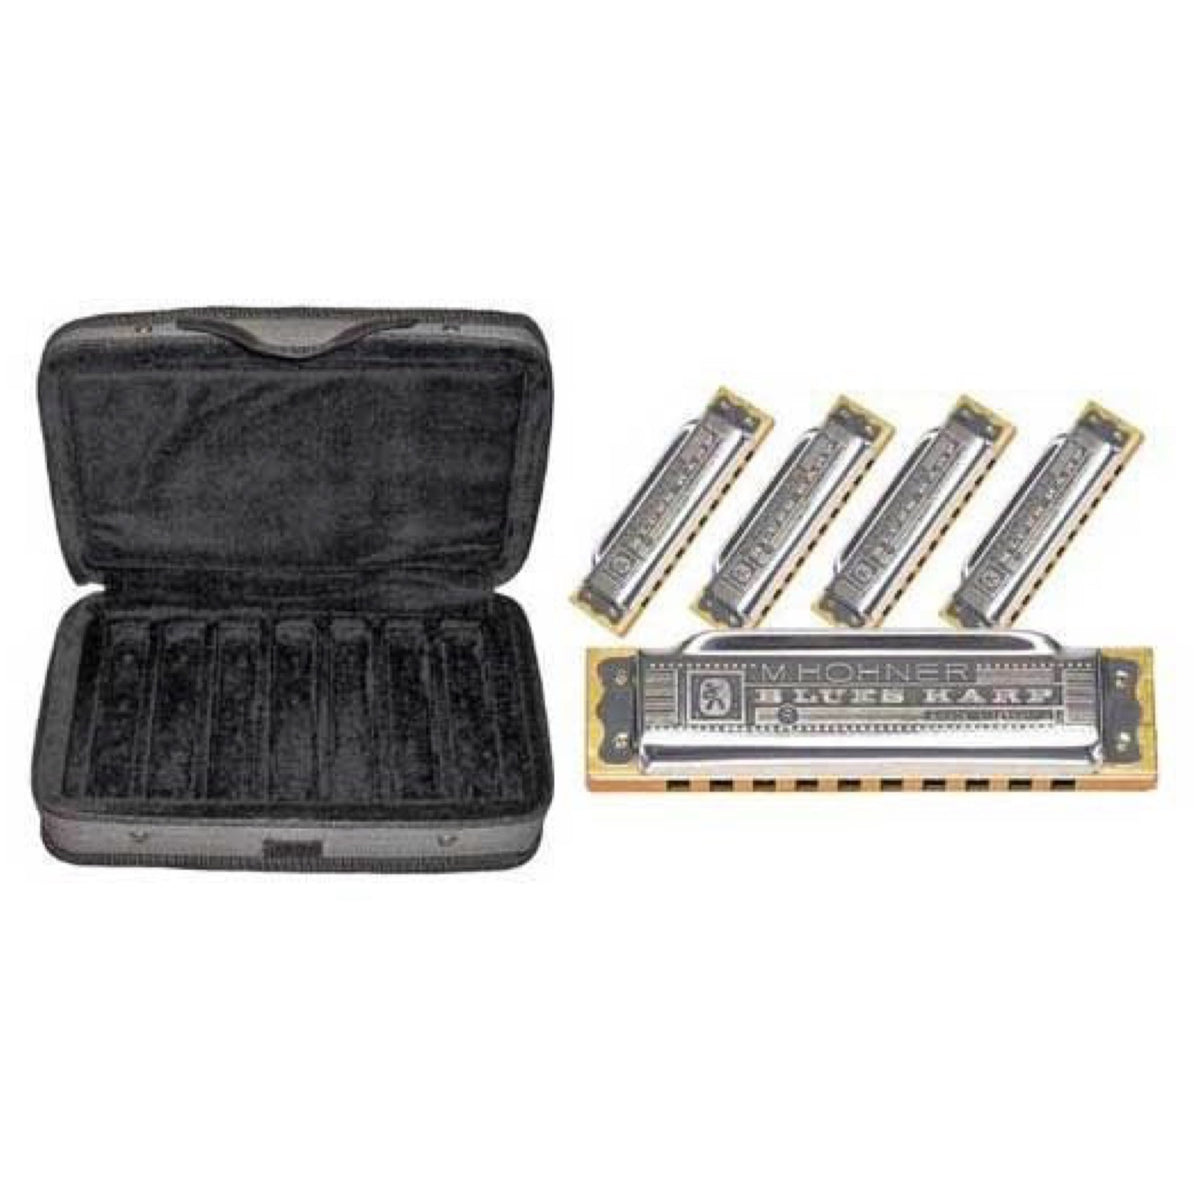 Hohner Case Of Blues Harmonicas, 5-Pack, with Case